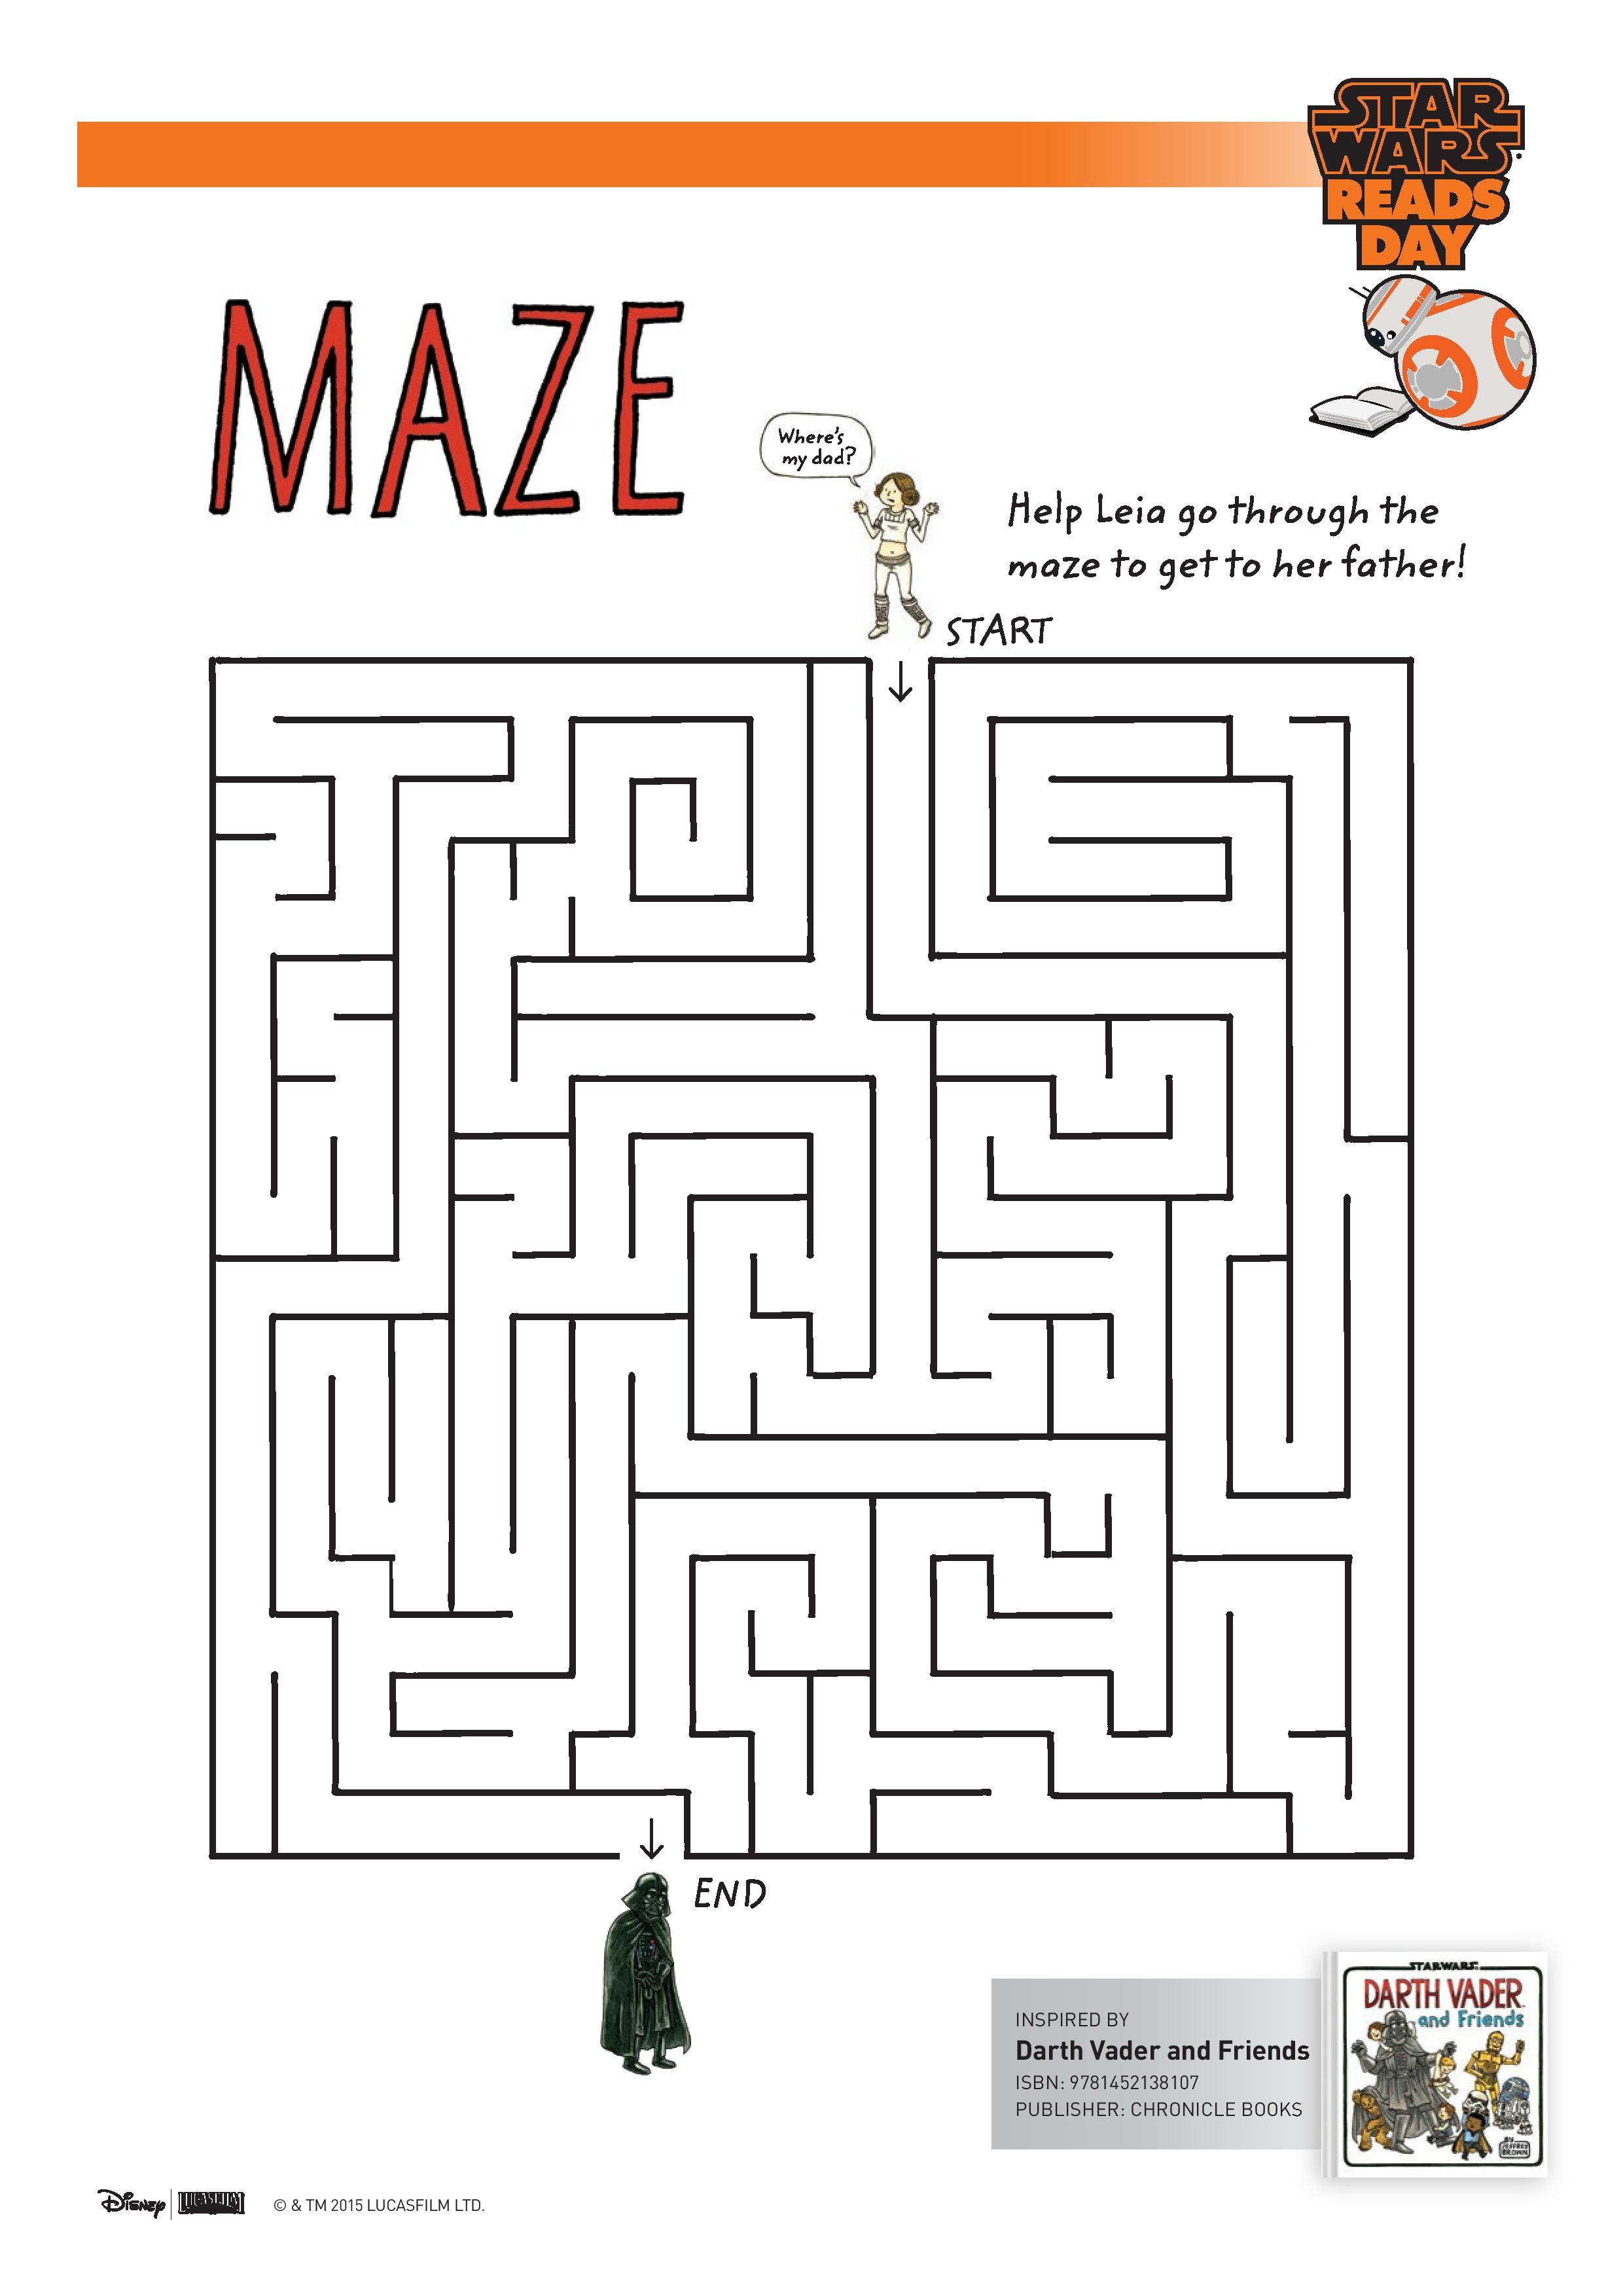 Star Wars Leia and Darth Vader Maze printable activity for kids